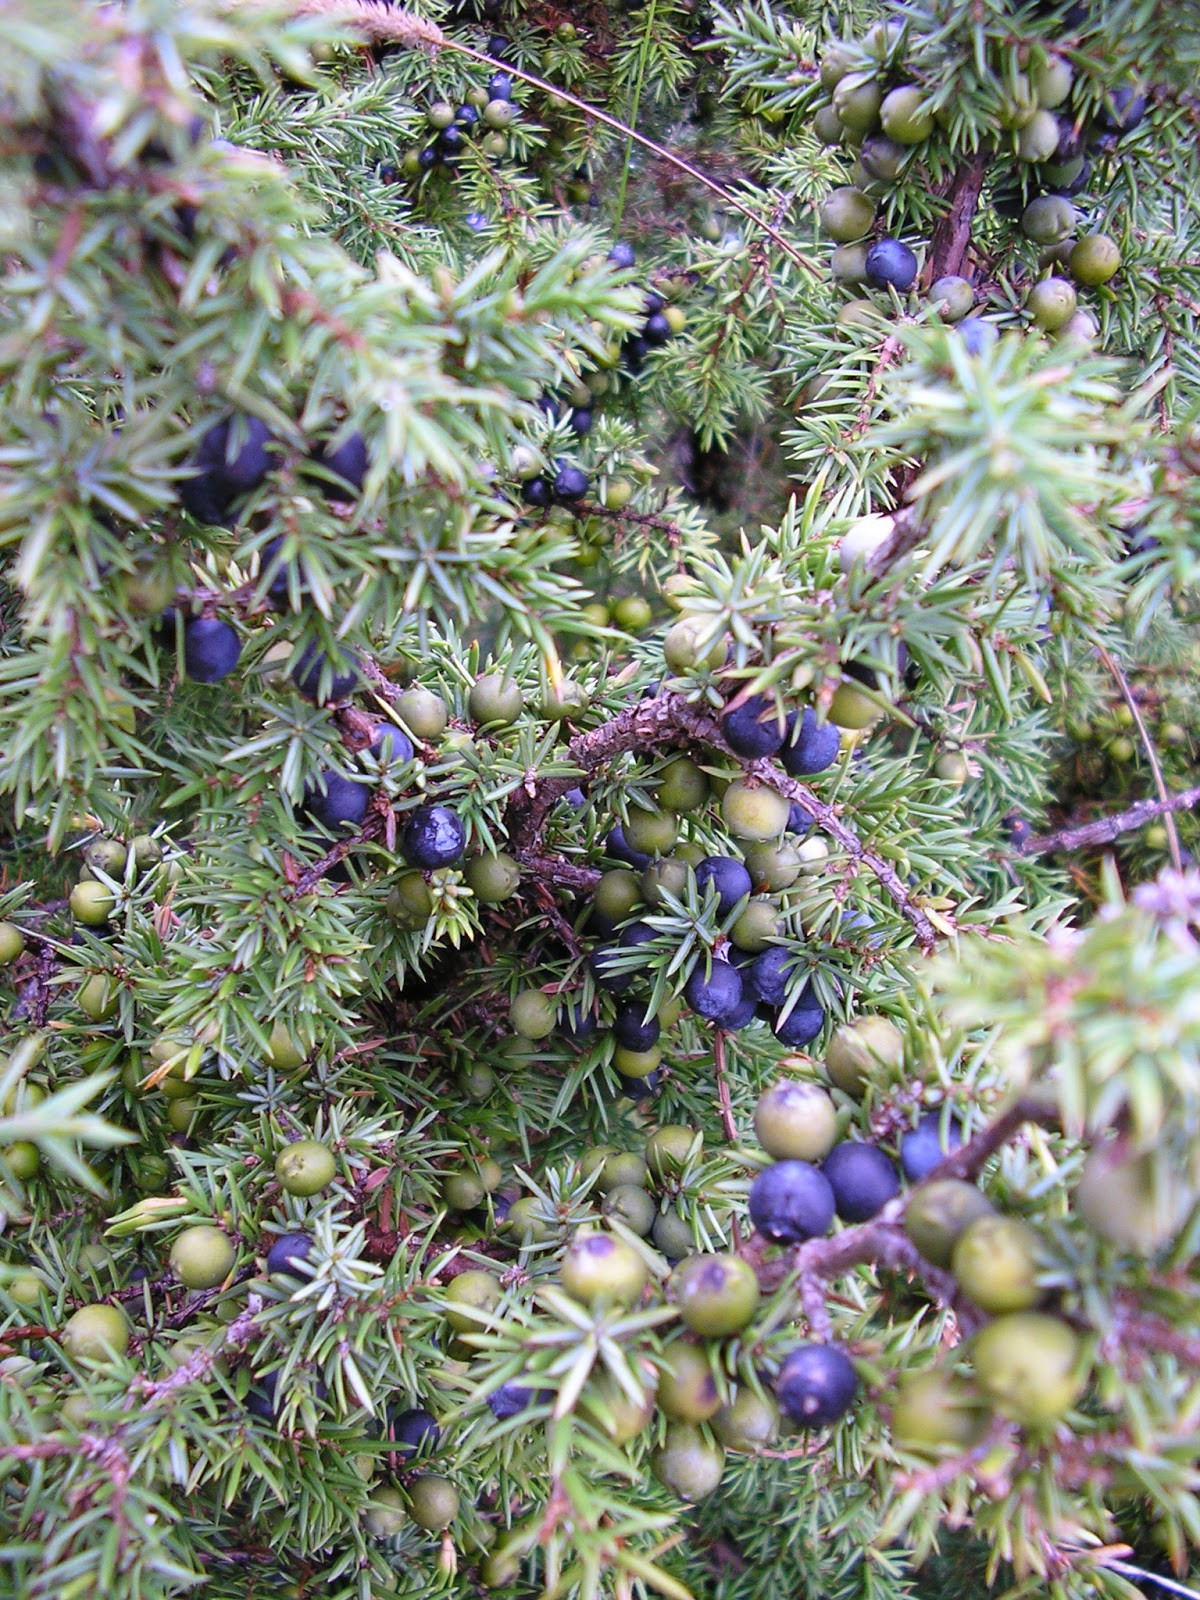 Temperate climate permaculture permaculture plants juniper for The juniper